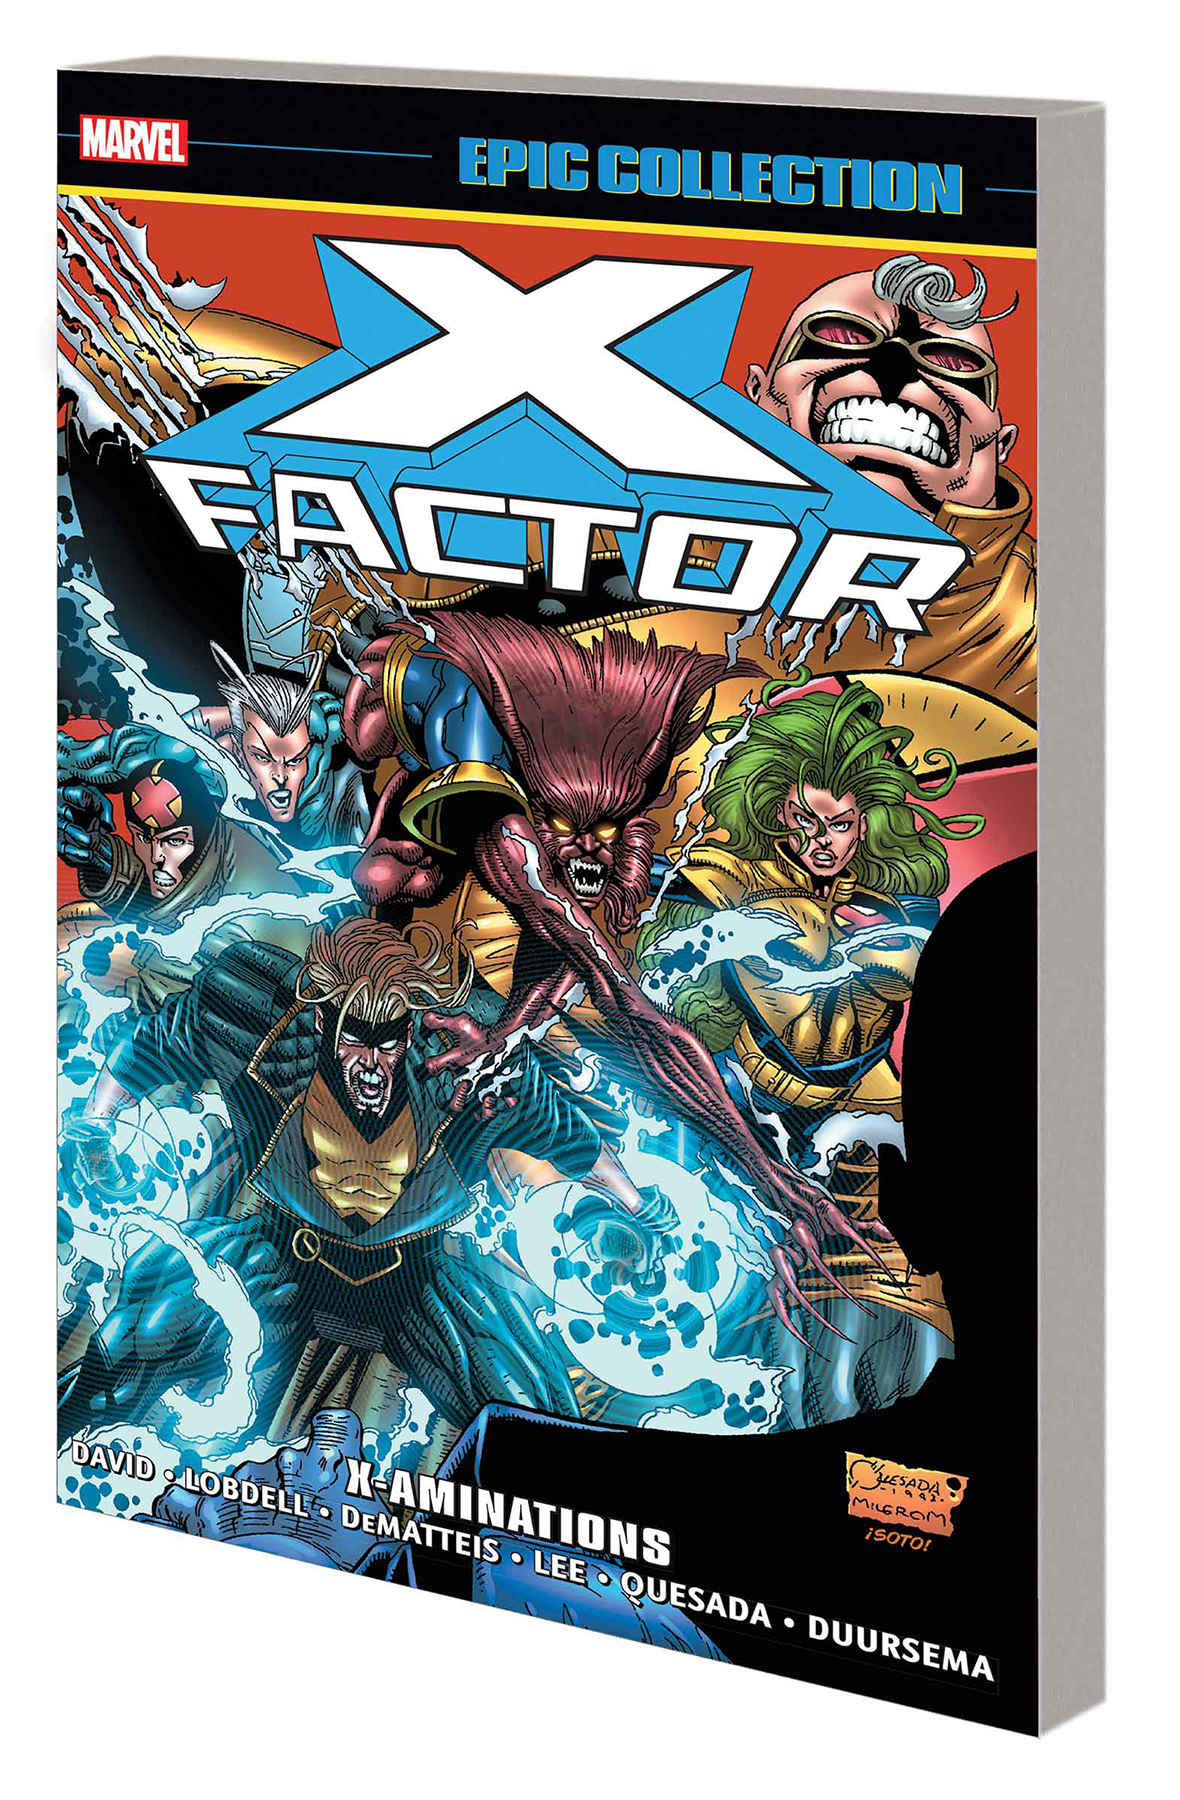 X-FACTOR EPIC COLLECTION (8) TP X-AMINATIONS [1992 #84-100+]